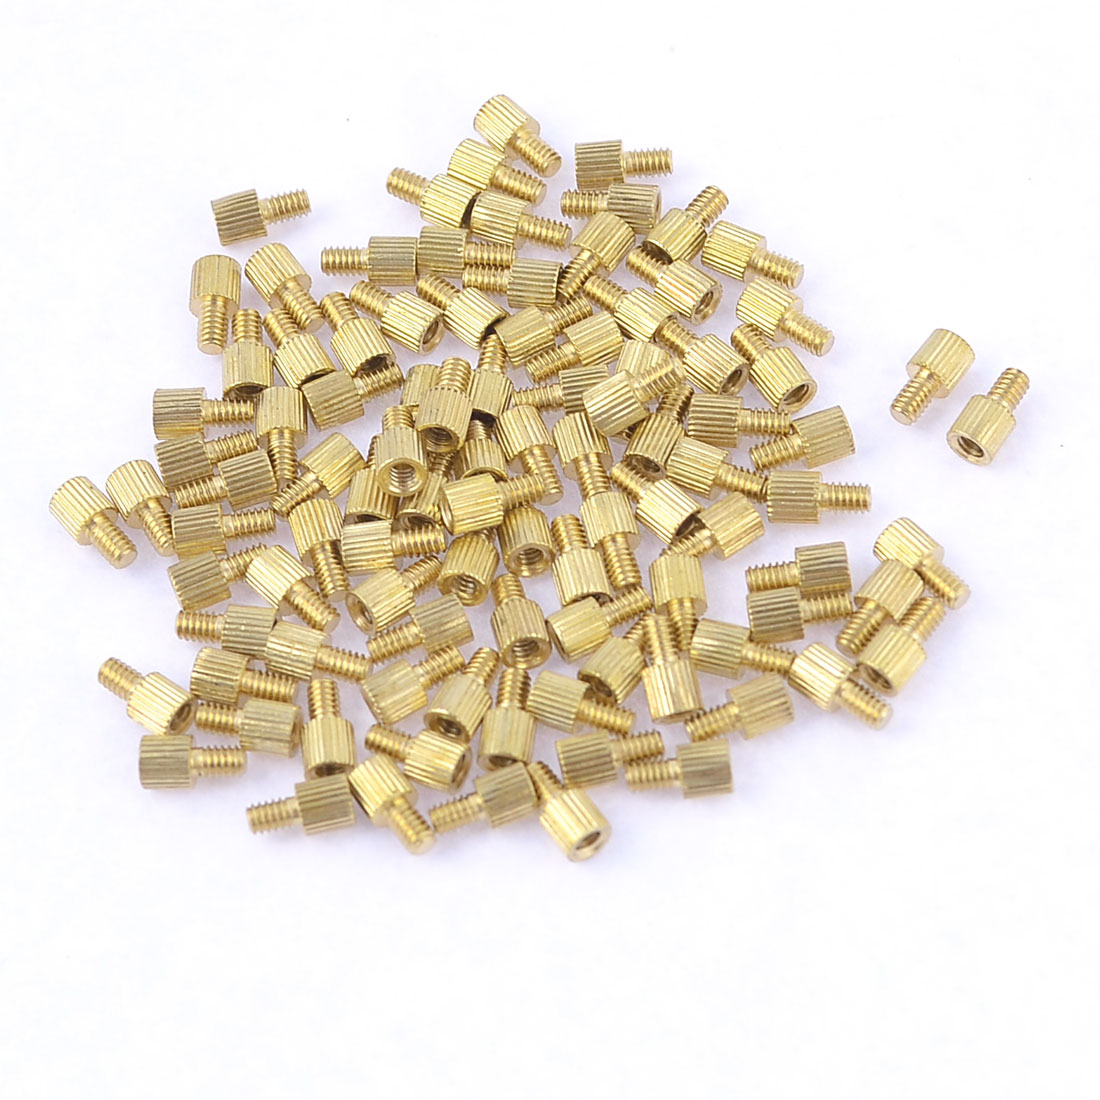 100 Pcs Male Female PCB Thread Brass Pillars Standoff Spacers M2x3mmx6mm